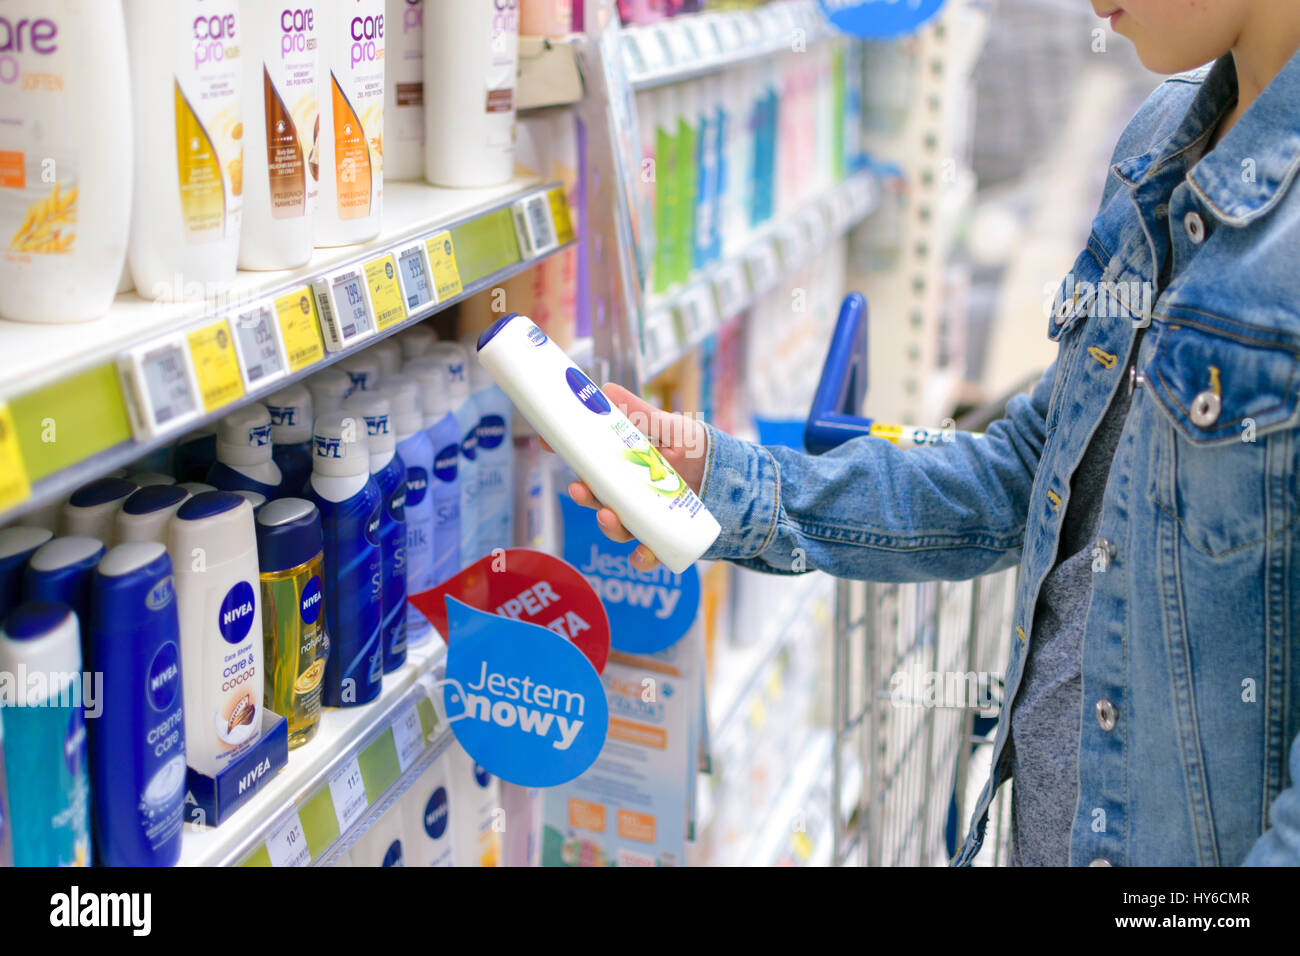 Nowy Sacz, Poland - March 29, 2017:  Young woman in front of aisle with a variety of personal care  products of - Stock Image